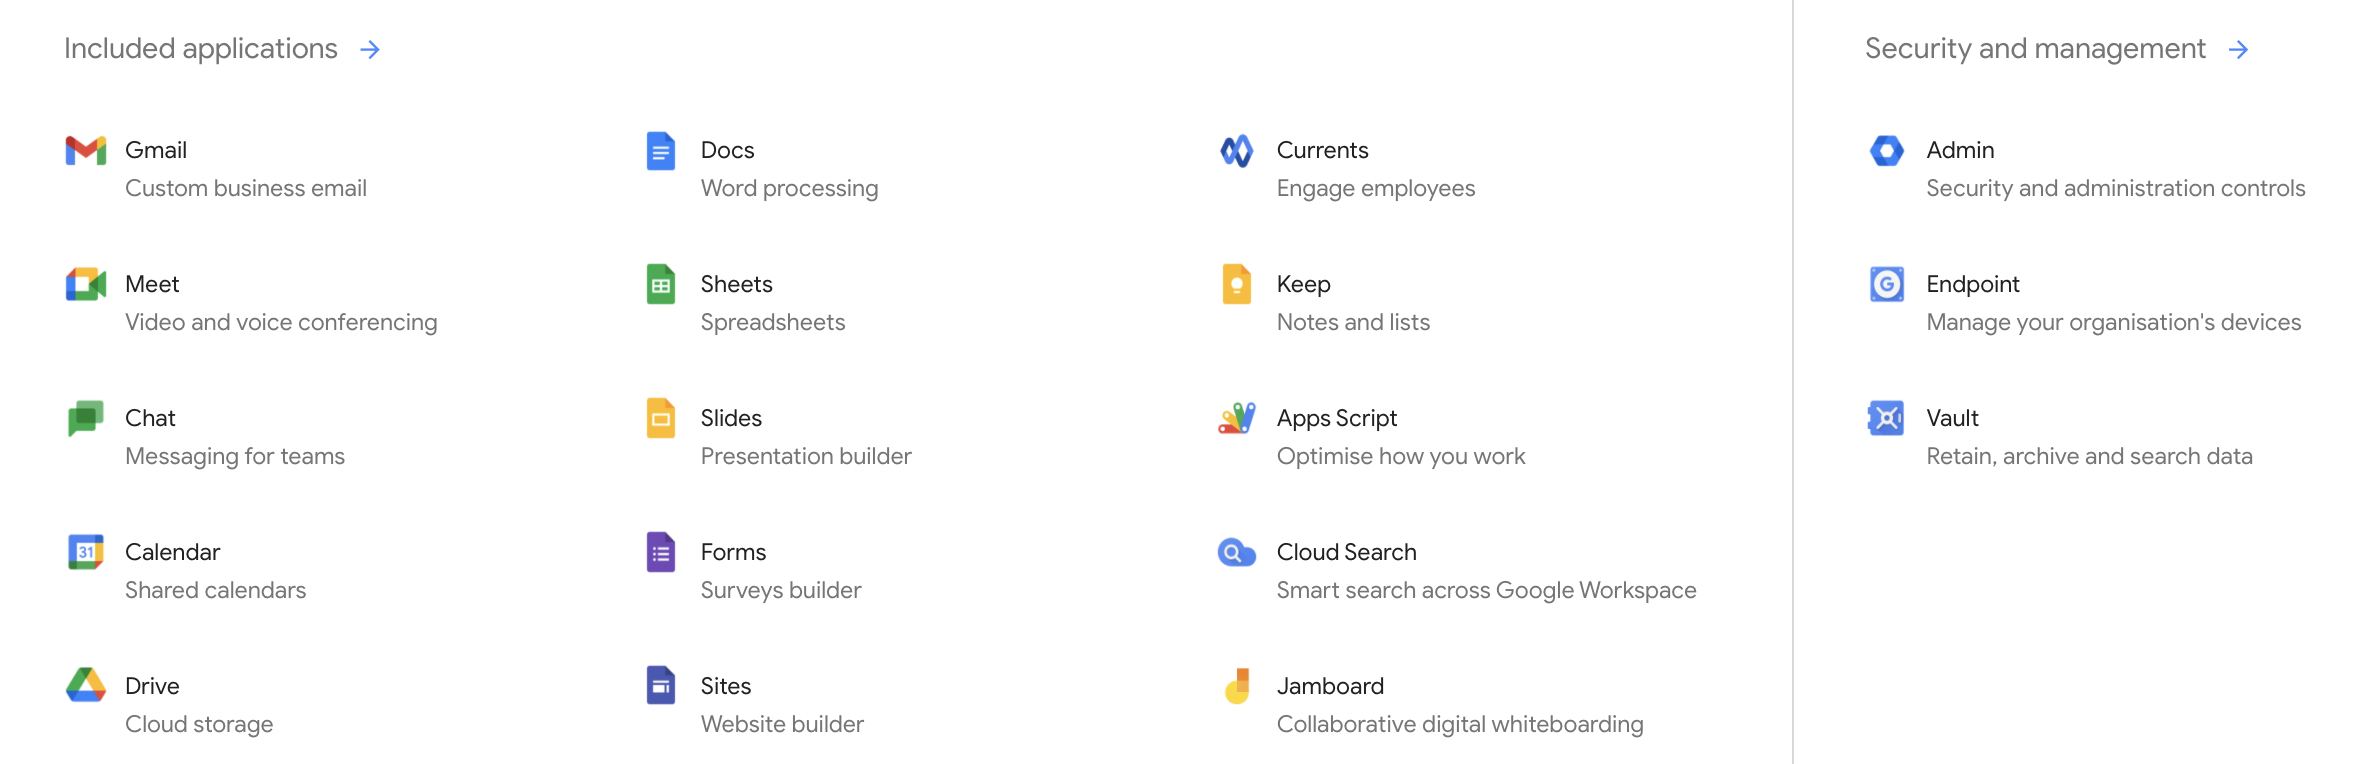 Apps Included in Google Workspace